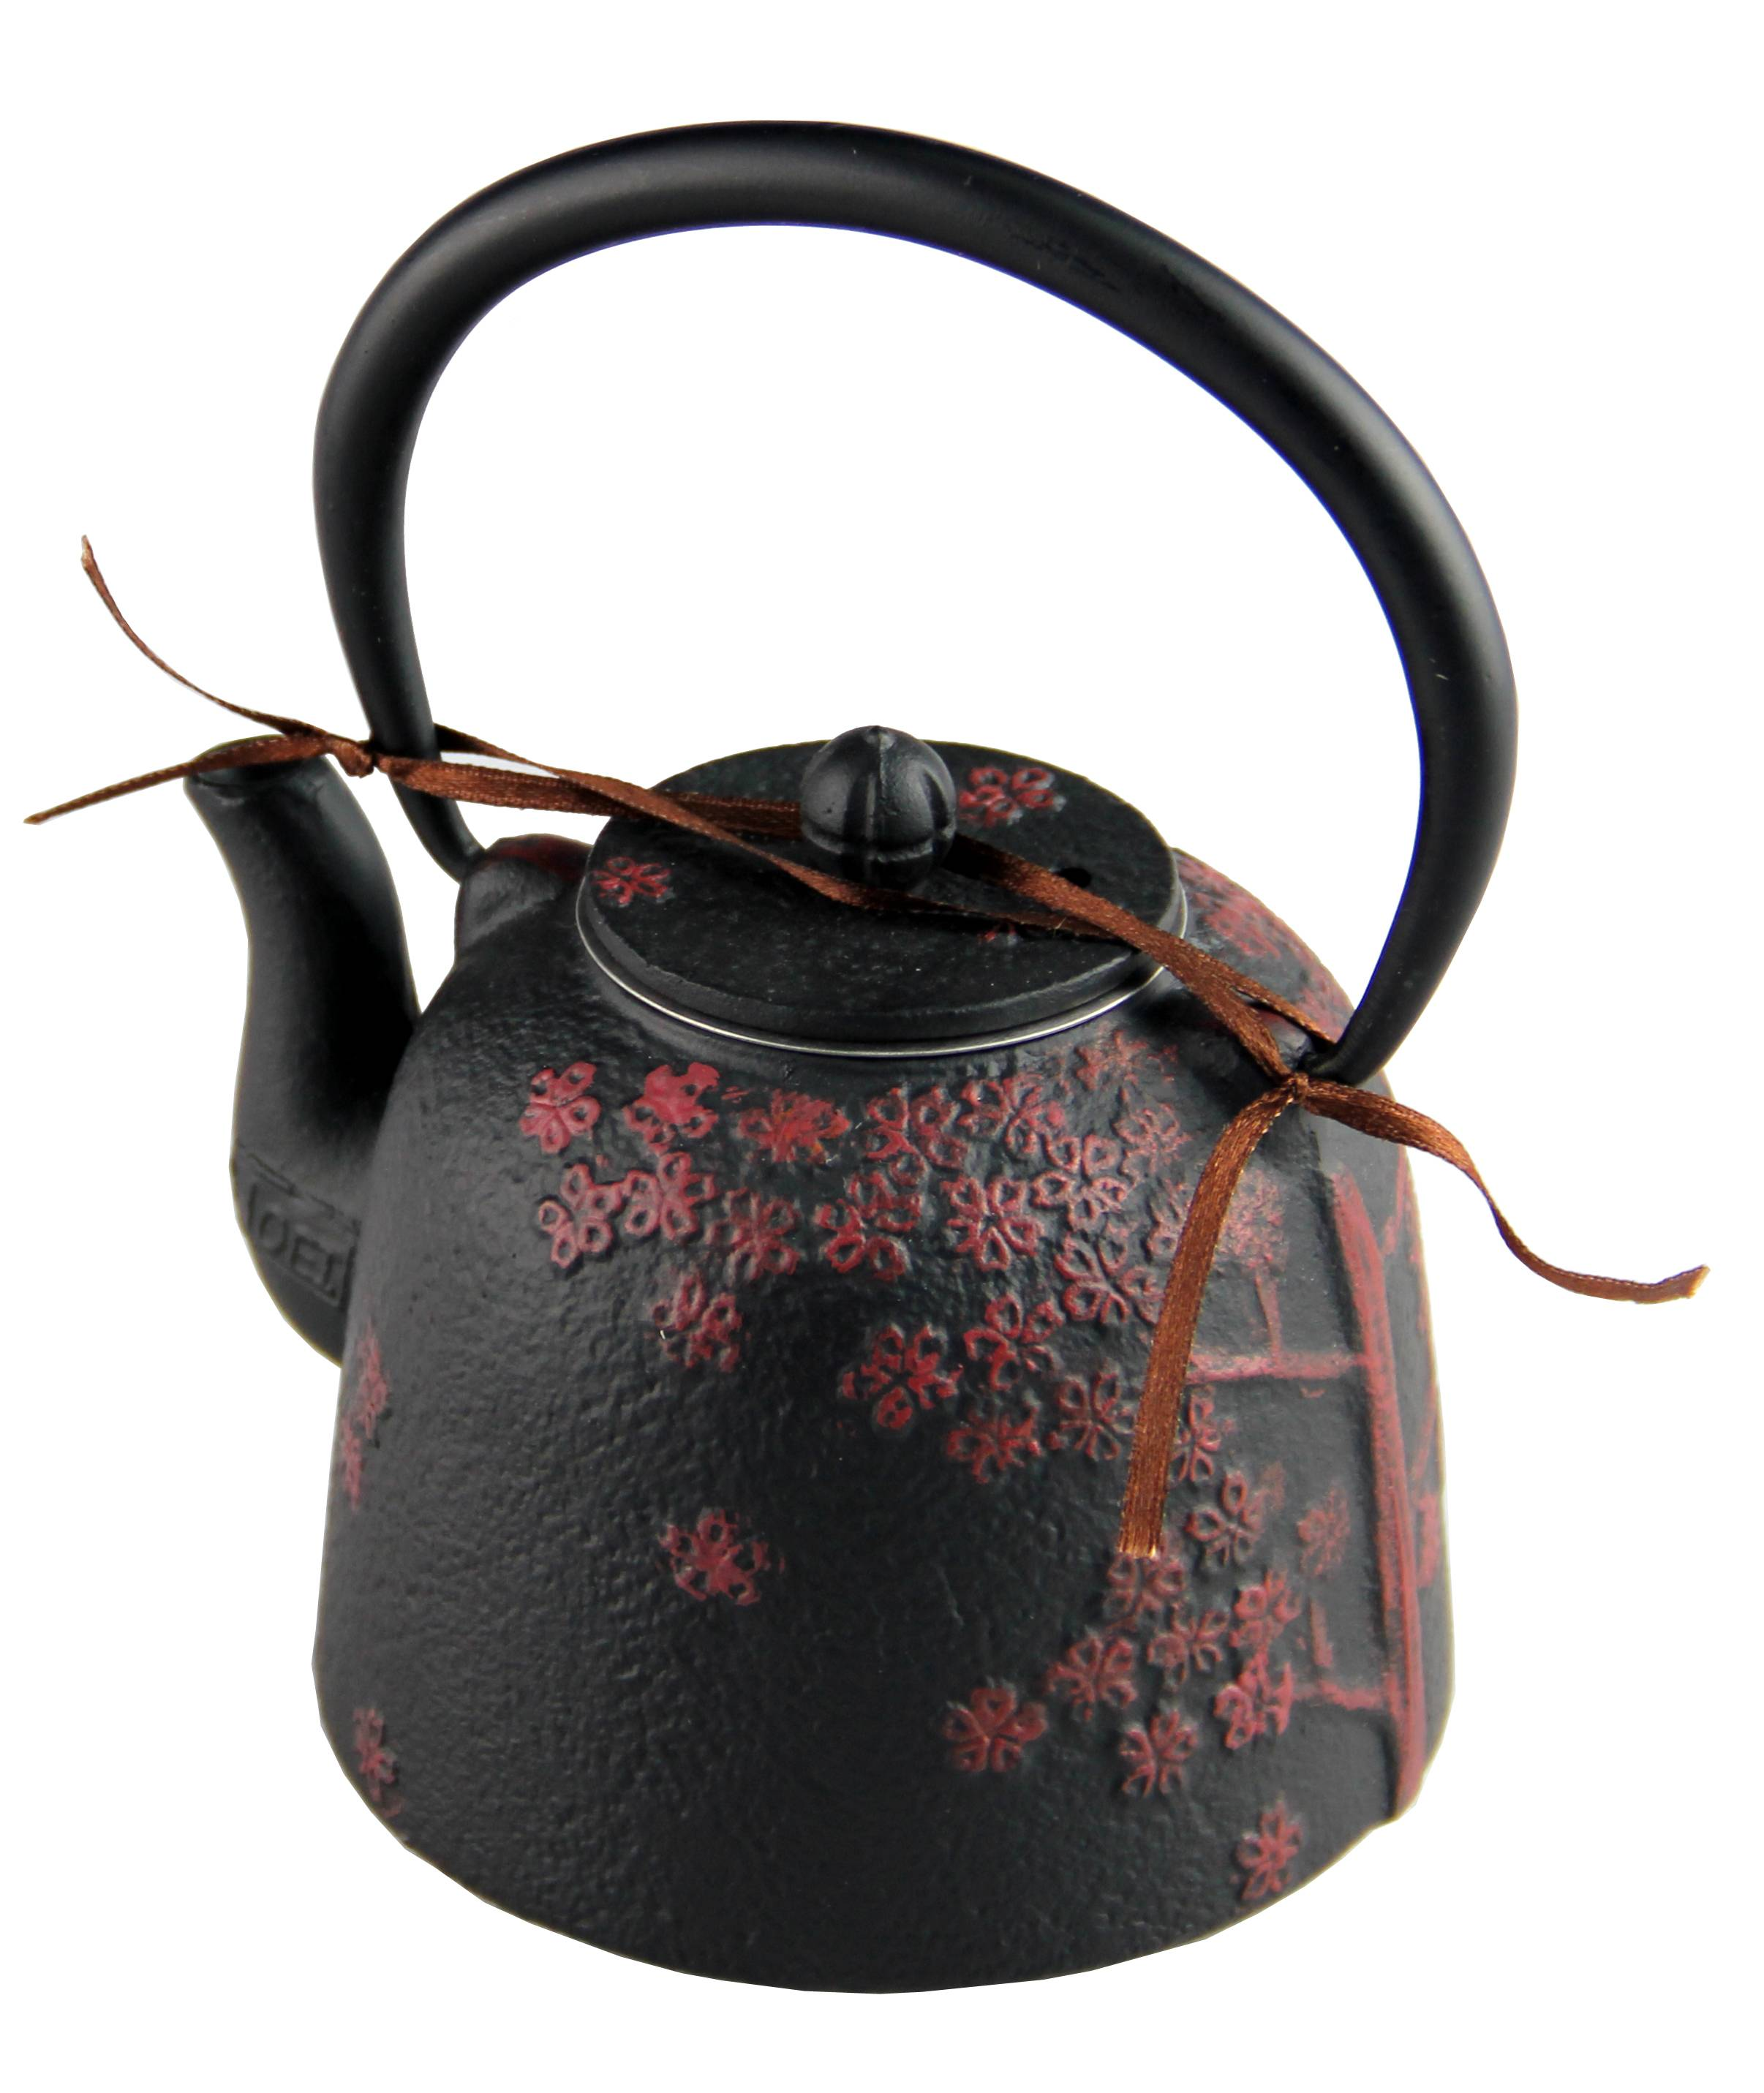 customized Chinese teaware cast iron teapot with trivet